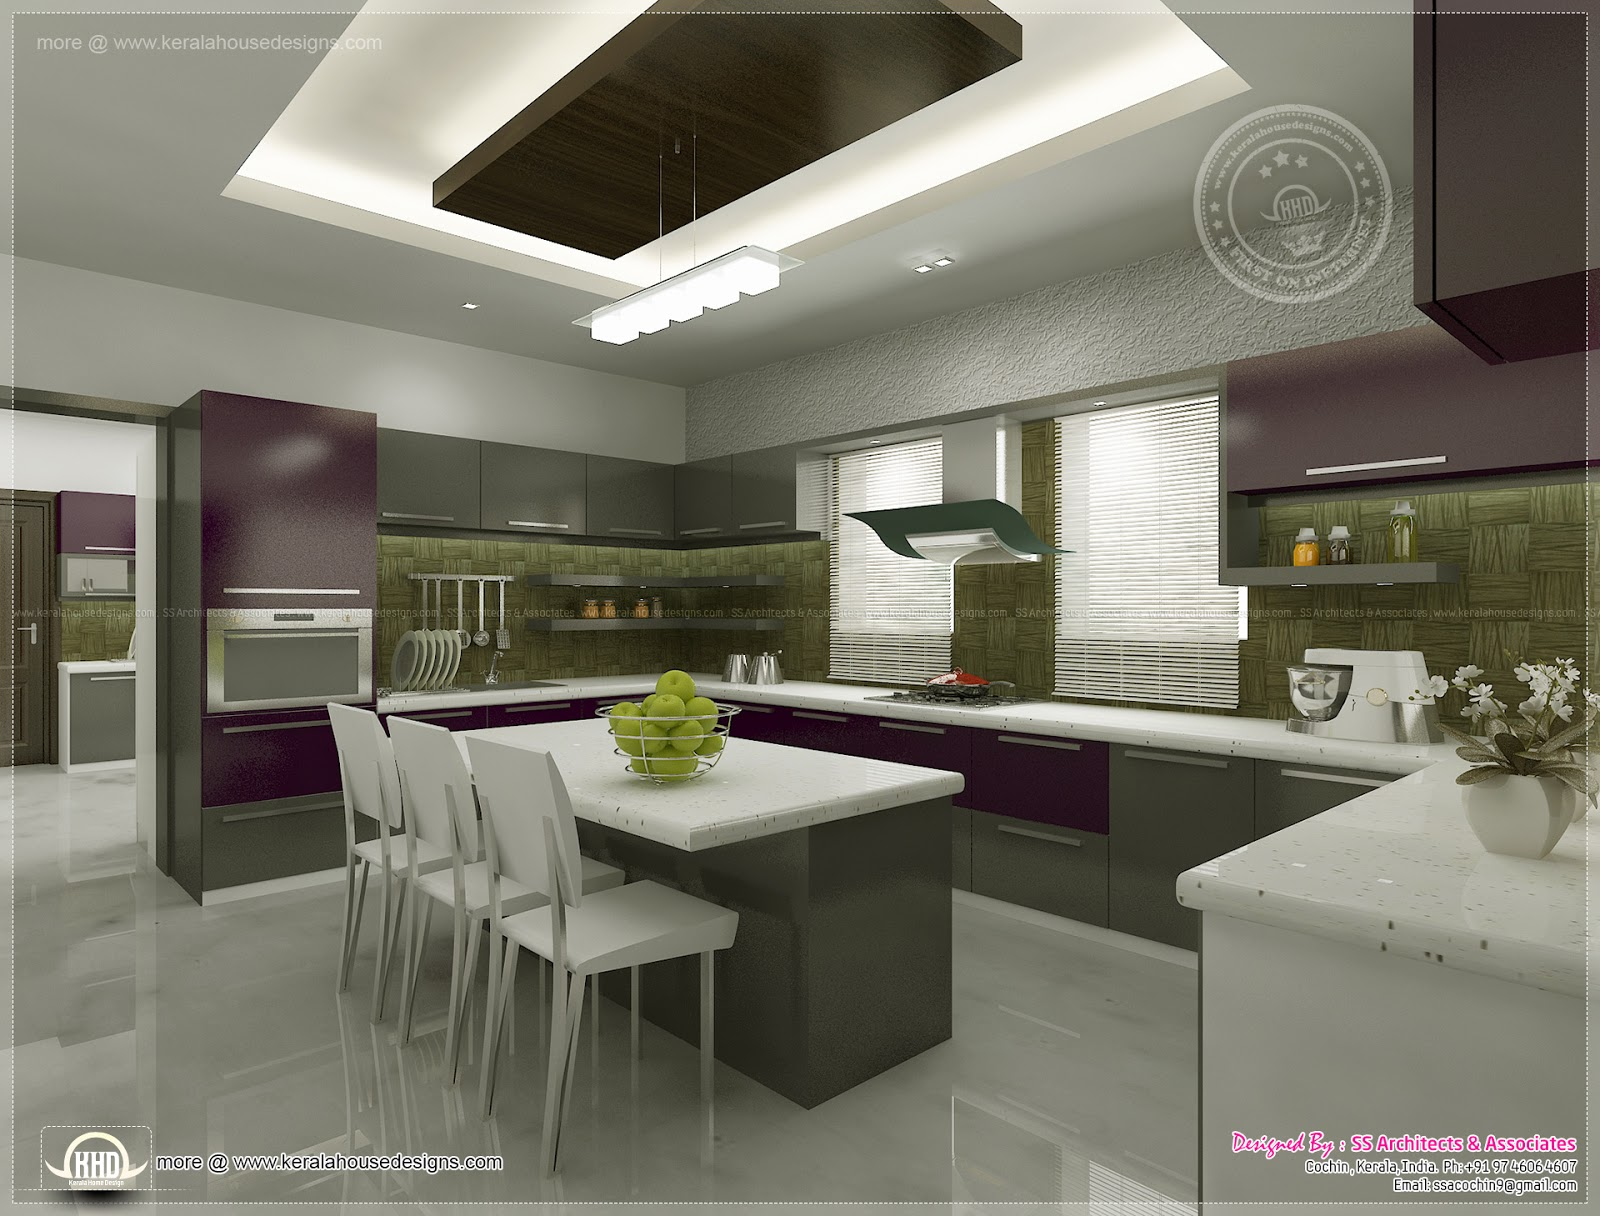 Kitchen interior views by ss architects cochin kerala for Interior design ideas for kitchen